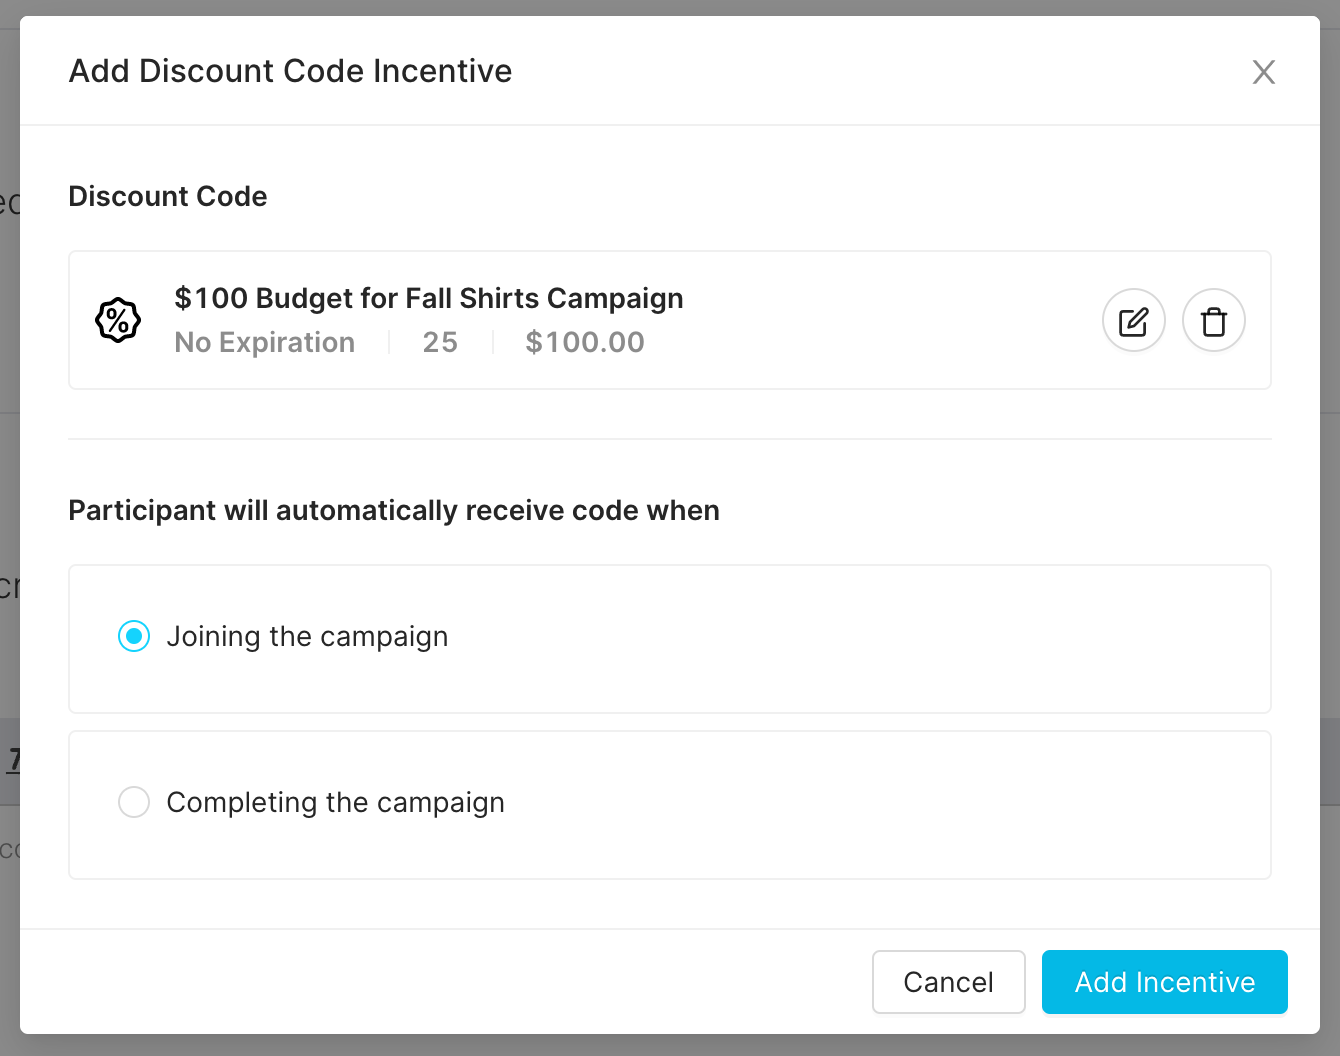 Immediately send influencers discount codes for campaign participation and completion